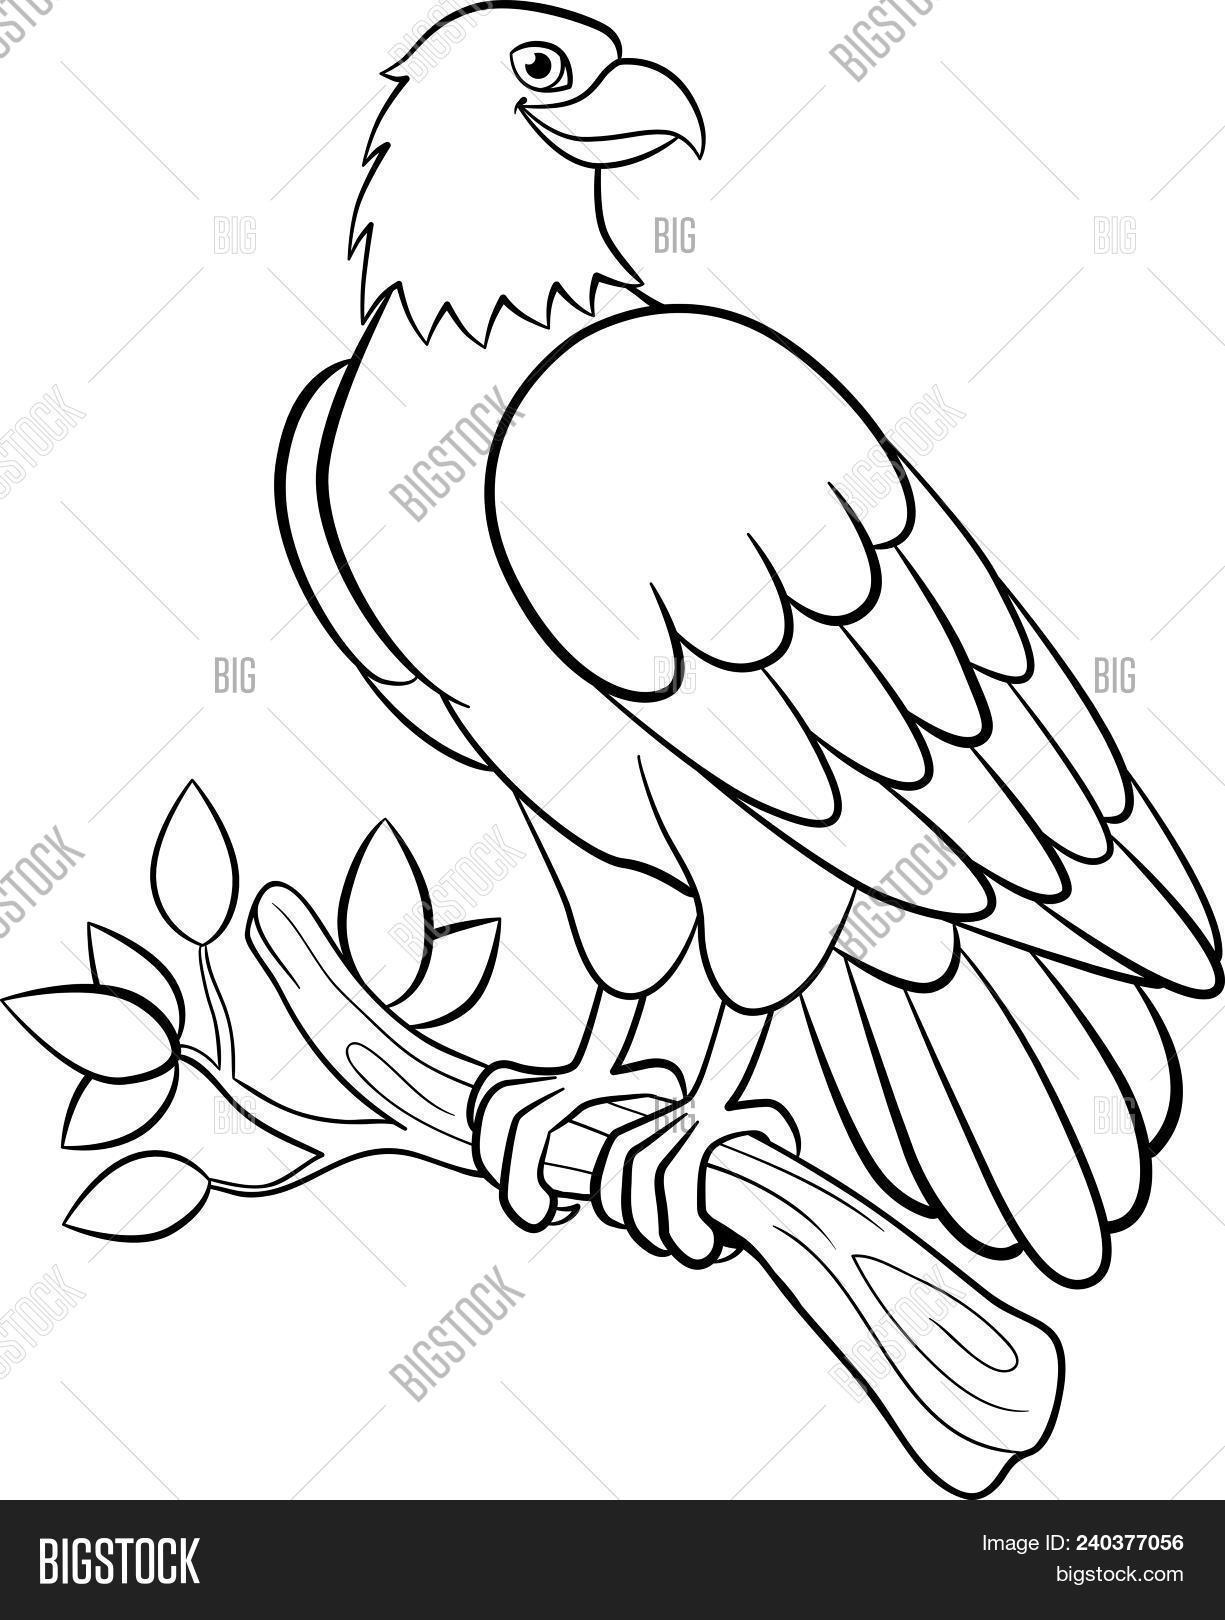 Feather of a bird. Kindergarten coloring sheet || COLORING-PAGES ... | 1620x1225